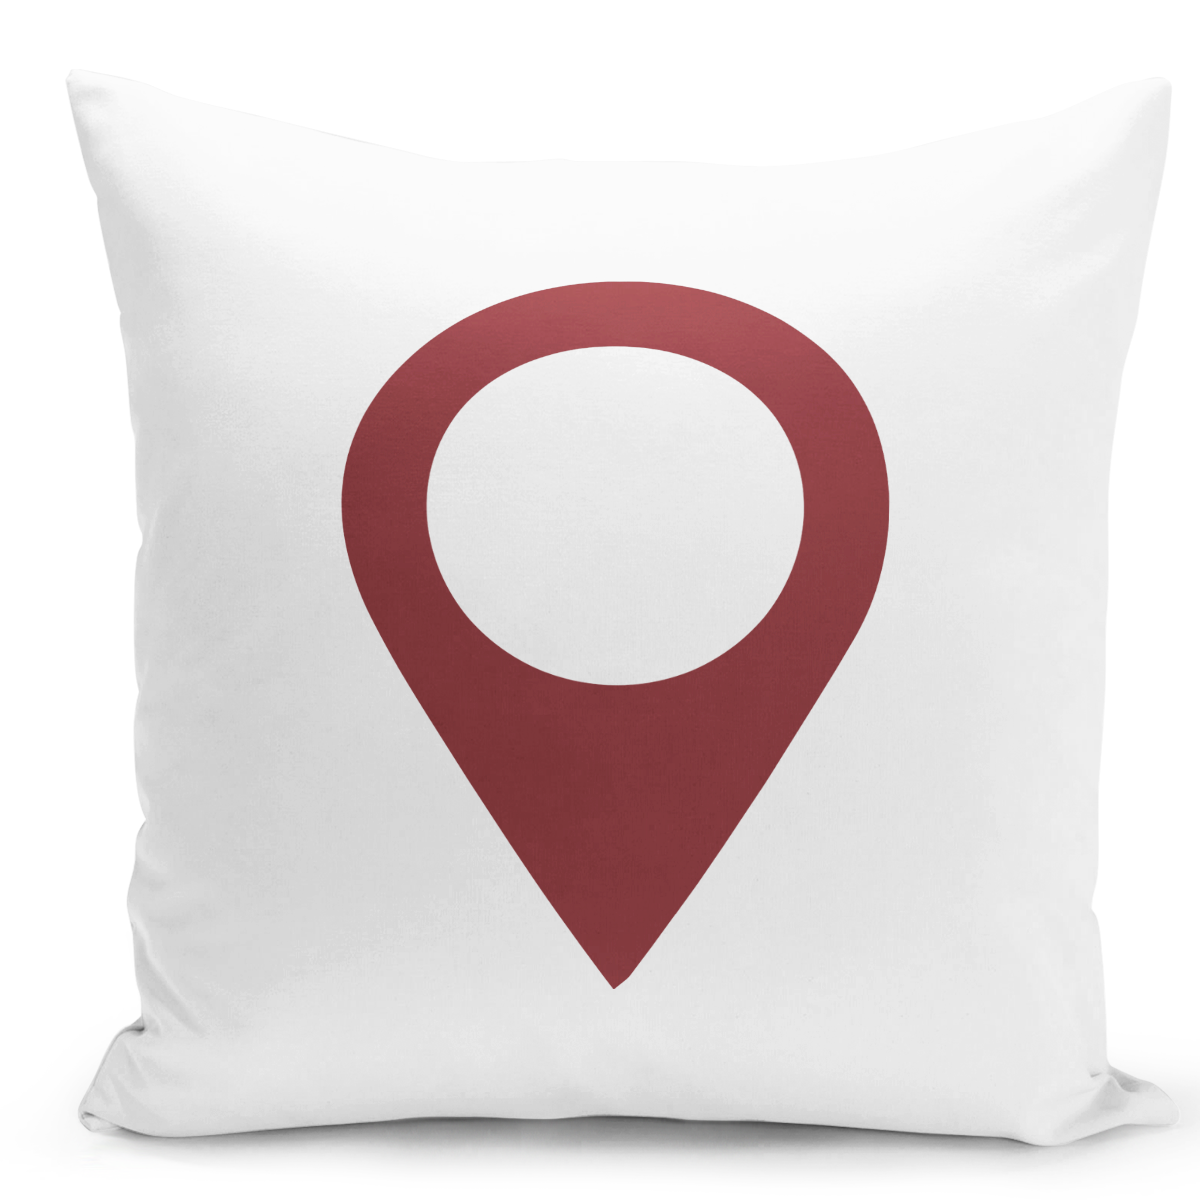 16x16-inch-Throw-Pillow-for-Home-Decor-with-Stuffing-Set-Location-Current-Location-Pin-Pillow-